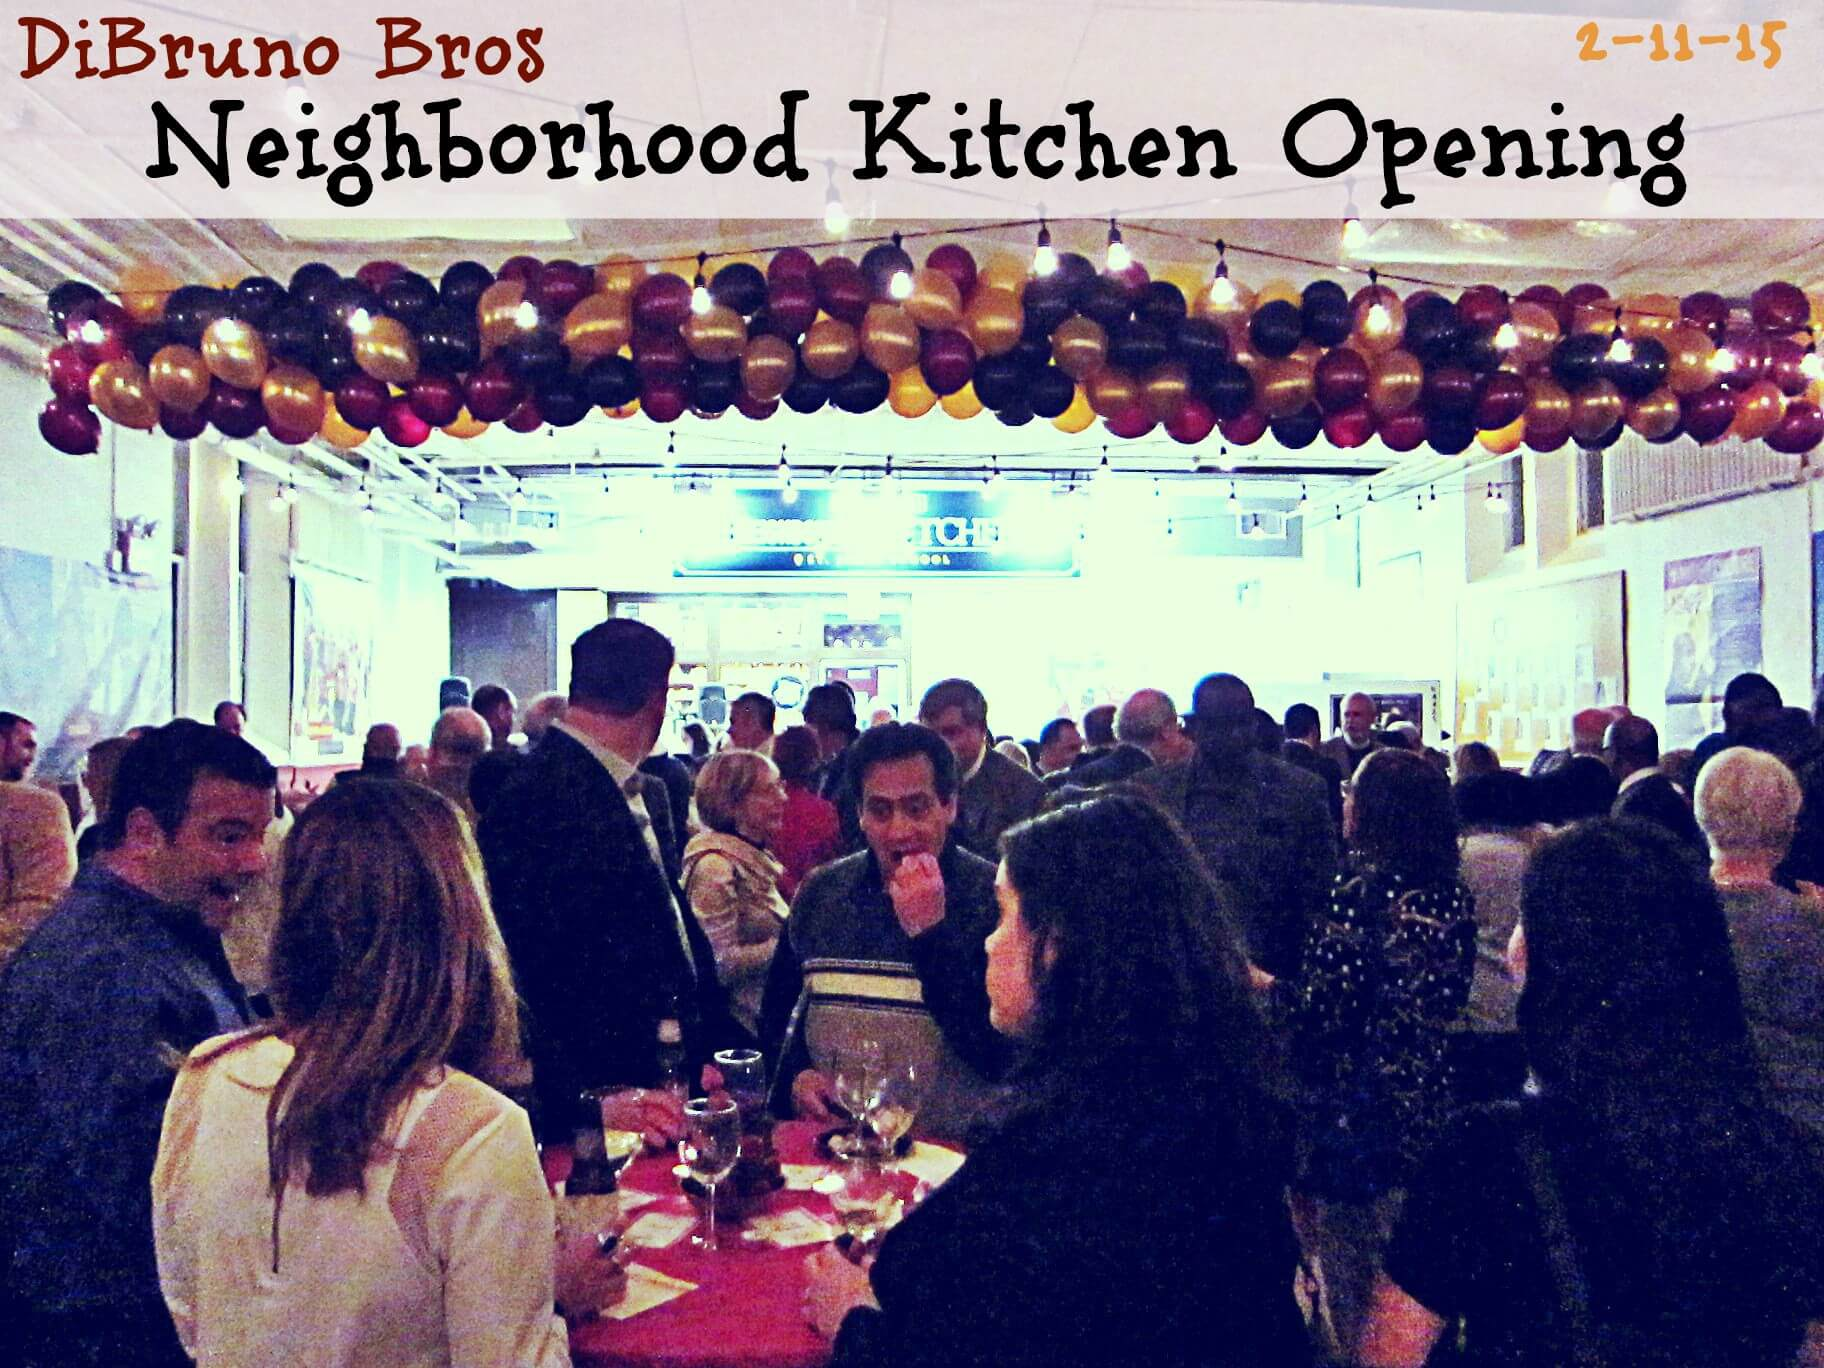 East Falls Local St James Neighborhood Kitchen 2-11 refurbished space in basement of St. James px text